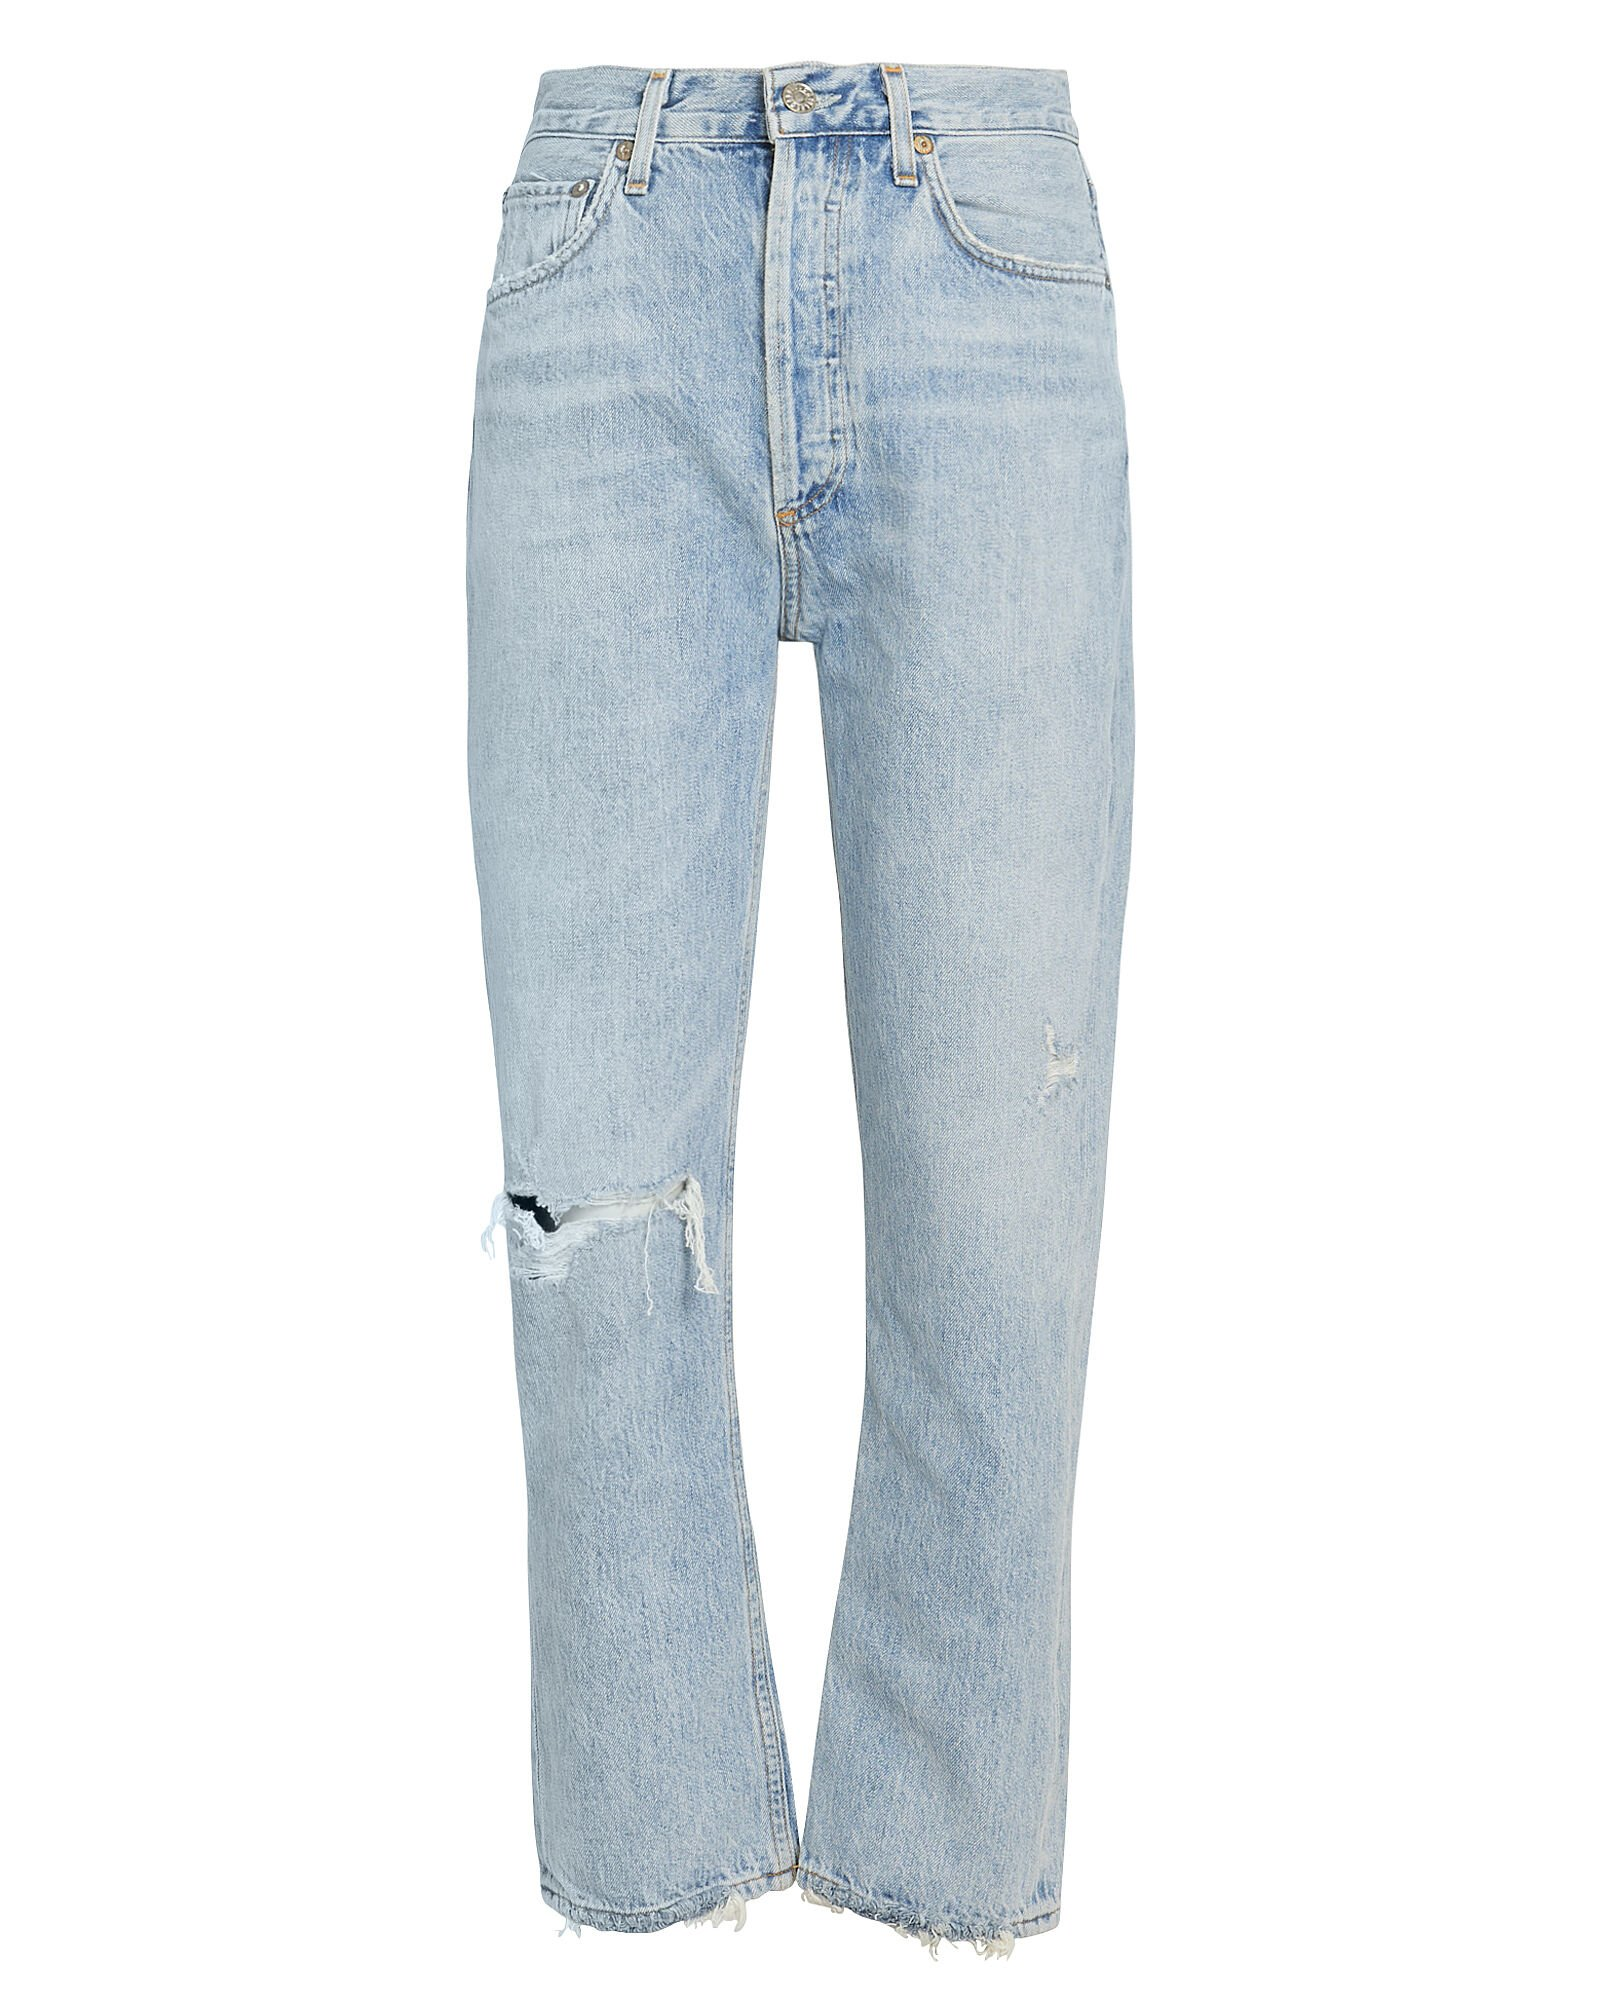 Riley High-Rise Cropped Jeans, Shatter, hi-res